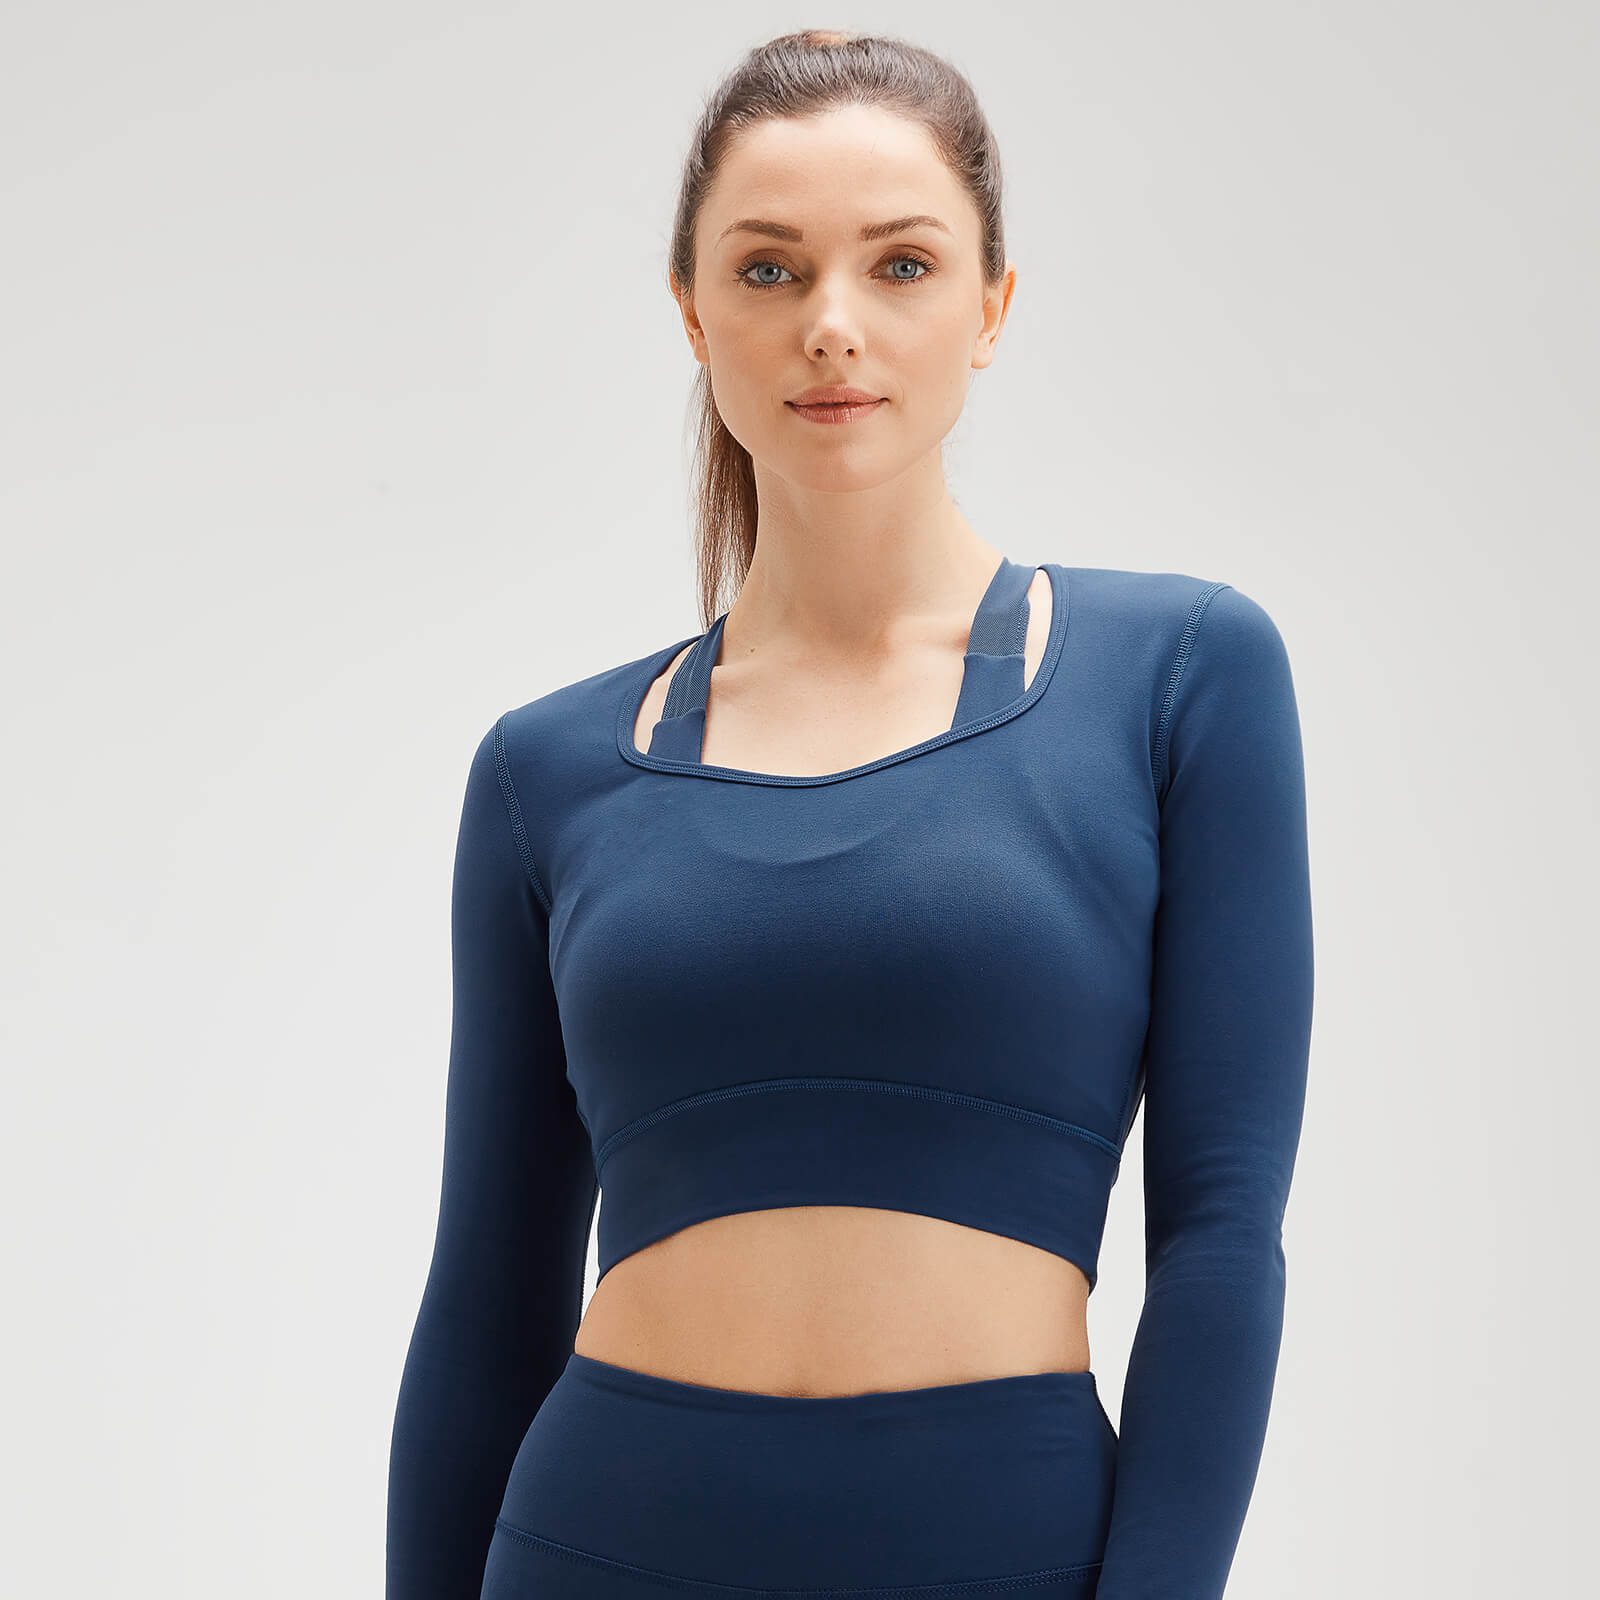 MP Women's Power Open Back Crop Top - Dark Blue - XL